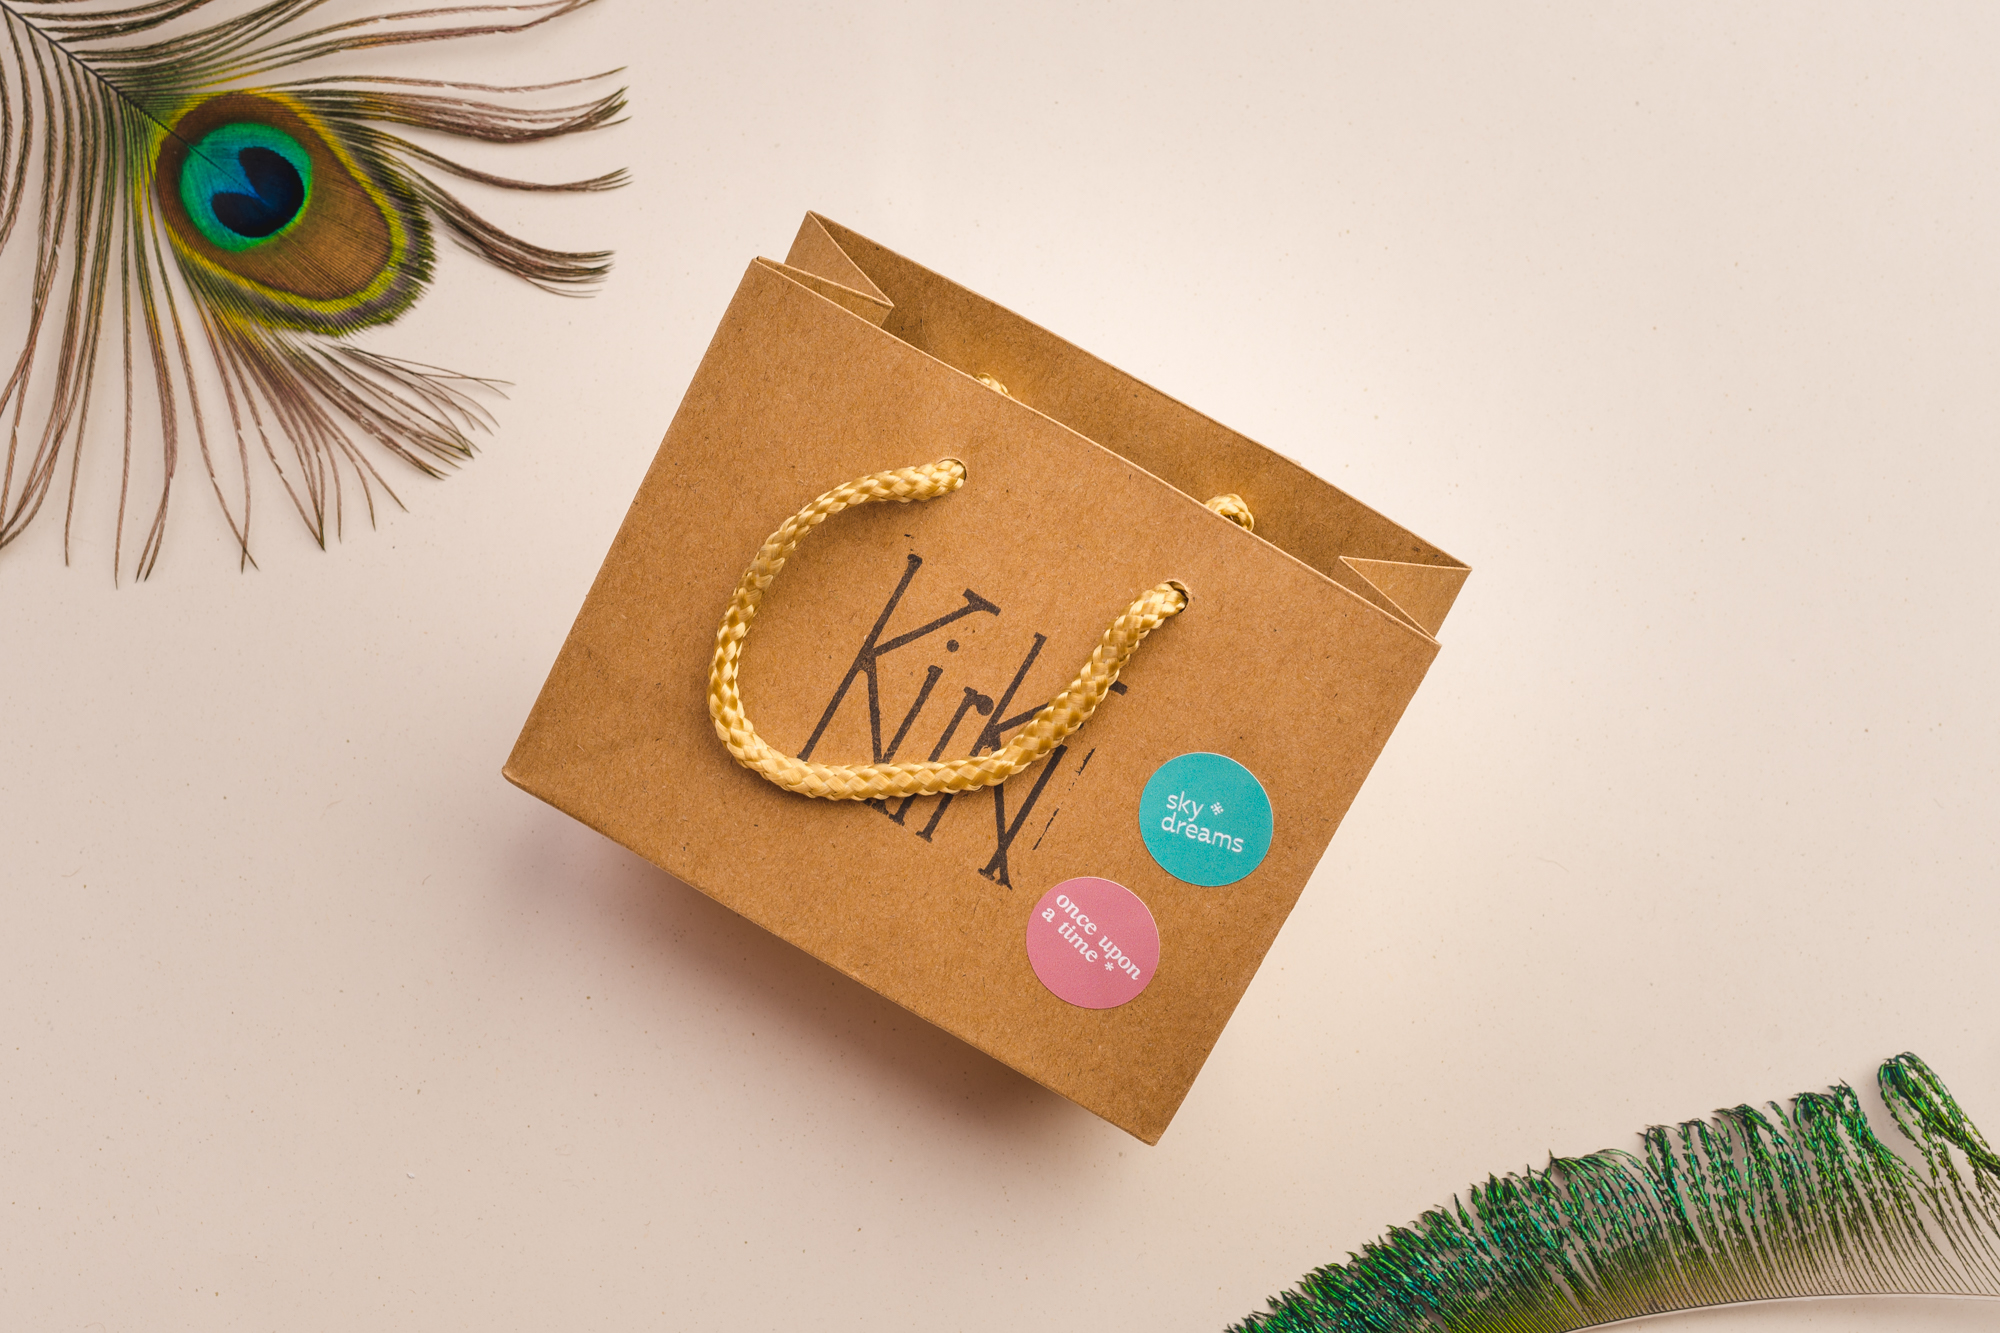 Visual Identity and Design for Kirki, a Jewelery Brand from Greece